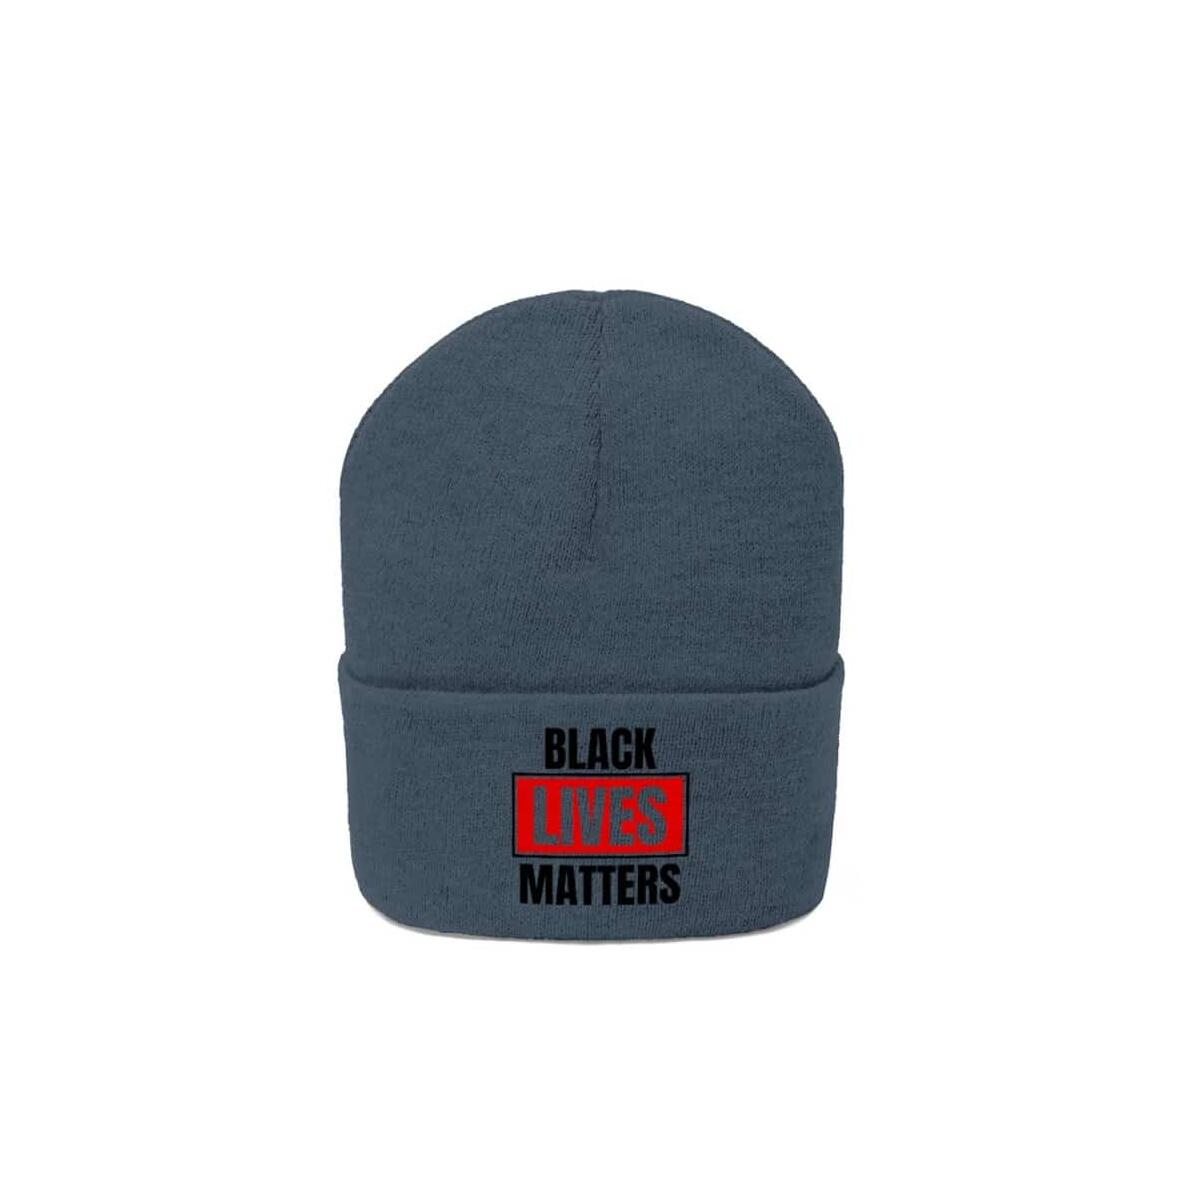 Afrocentric Black Lives Matter Knit Beanie, Graphite Heather / One size